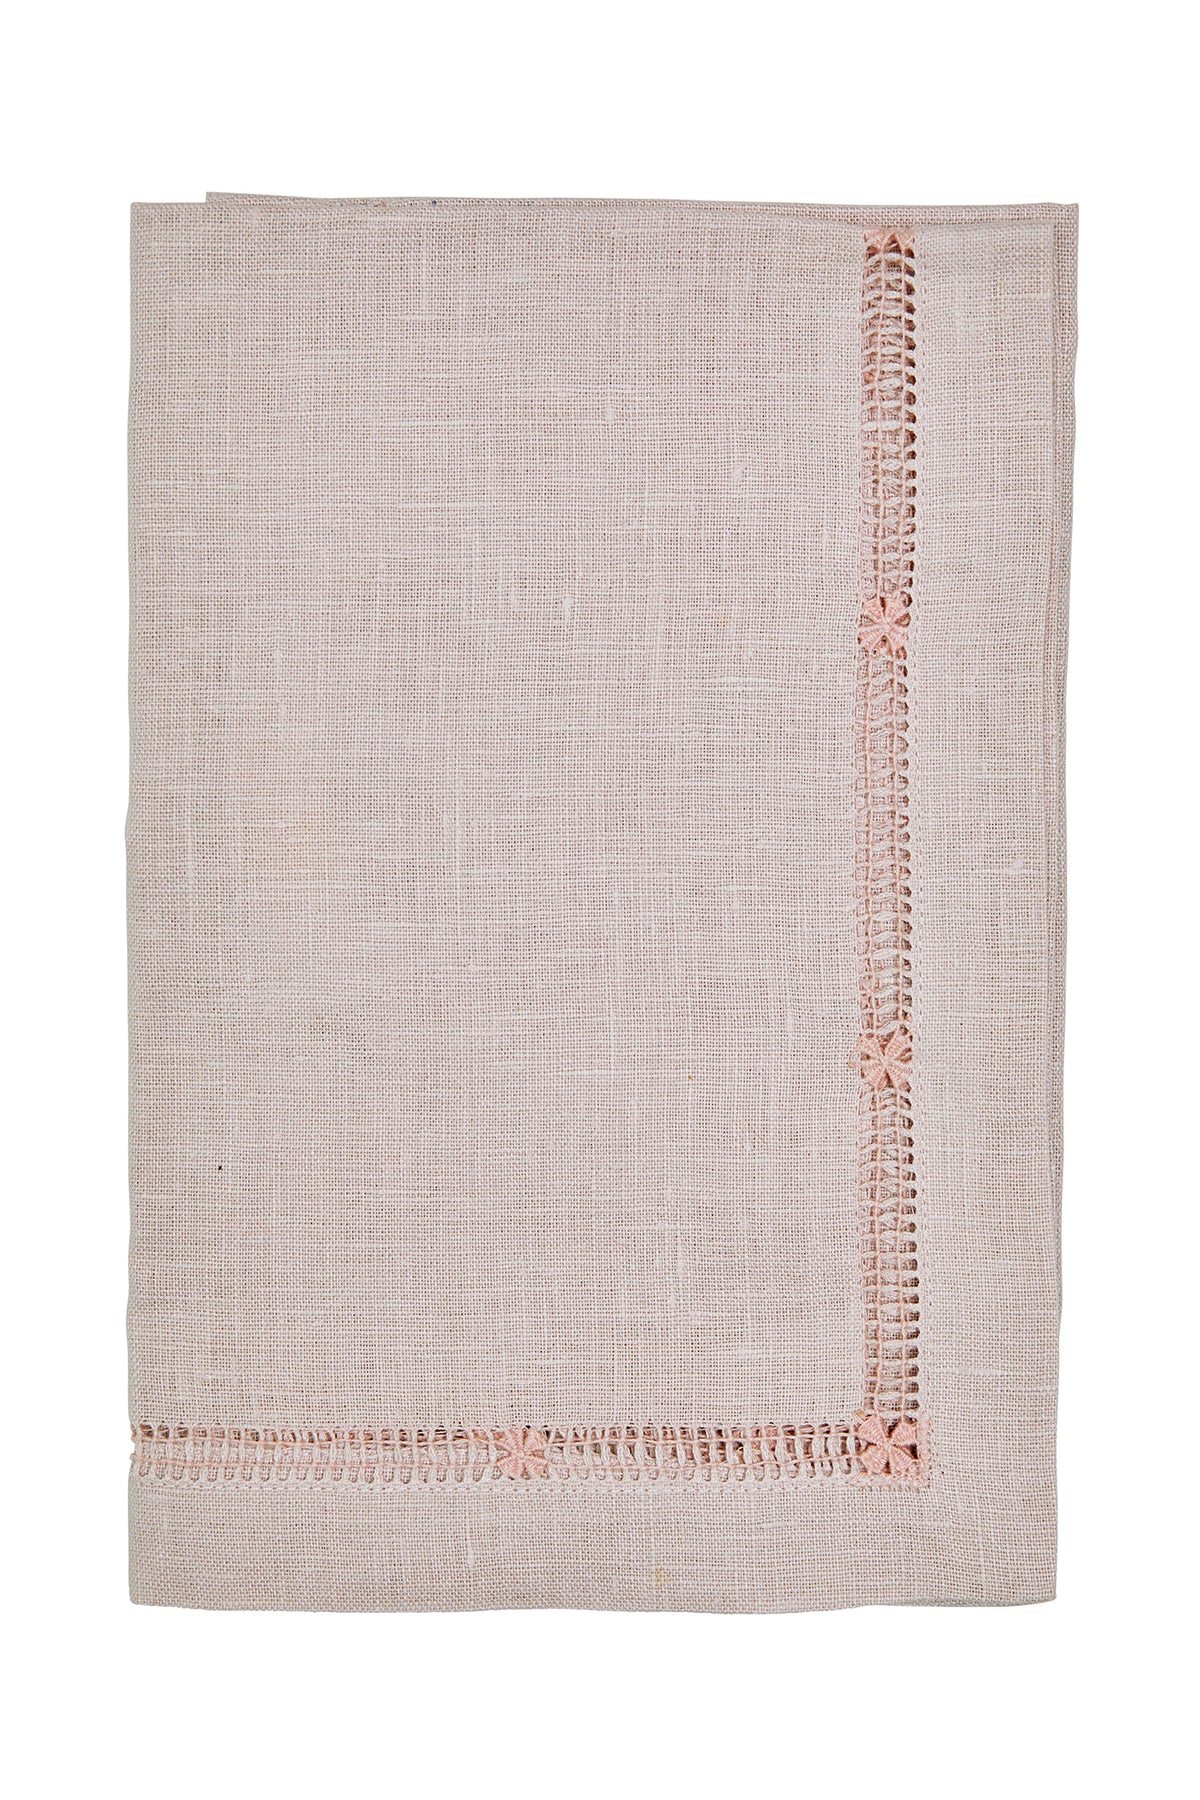 Blush Linen ~ Cocktail and Dinner Napkin